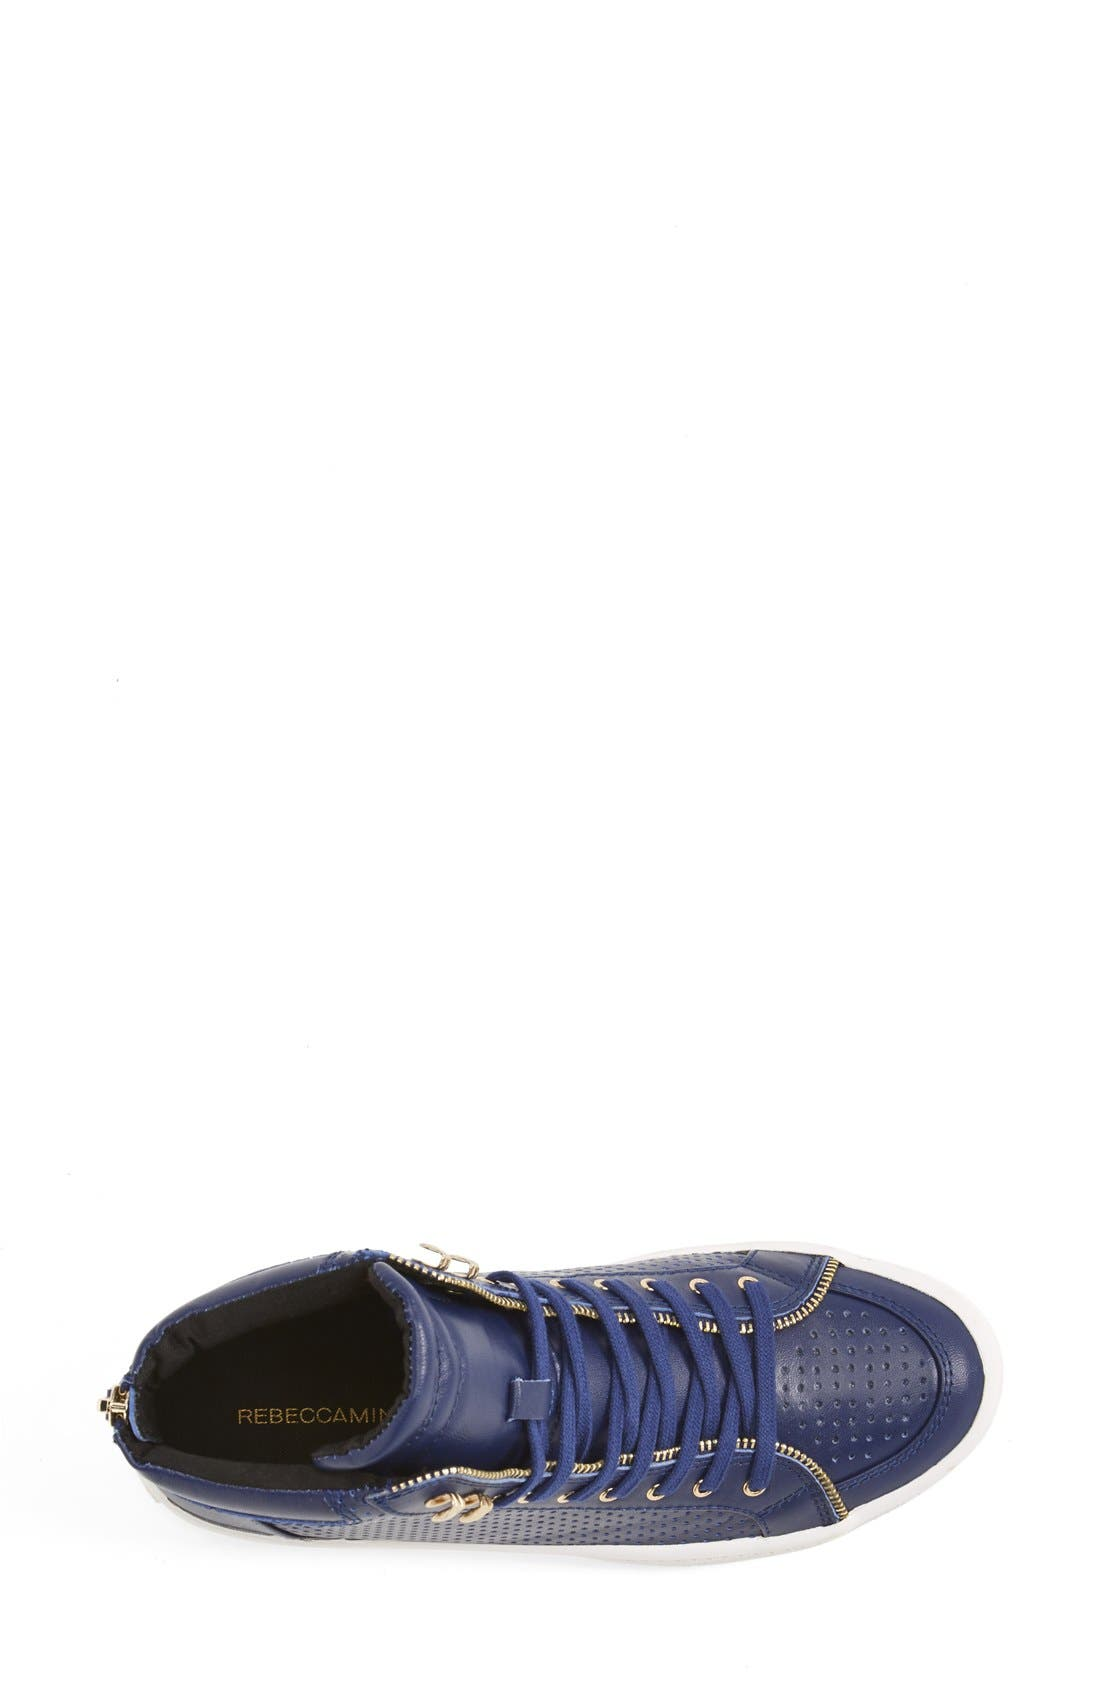 Alternate Image 3  - Rebecca Minkoff 'Sandi' Perforated & Quilted Leather High Top Sneaker (Women)